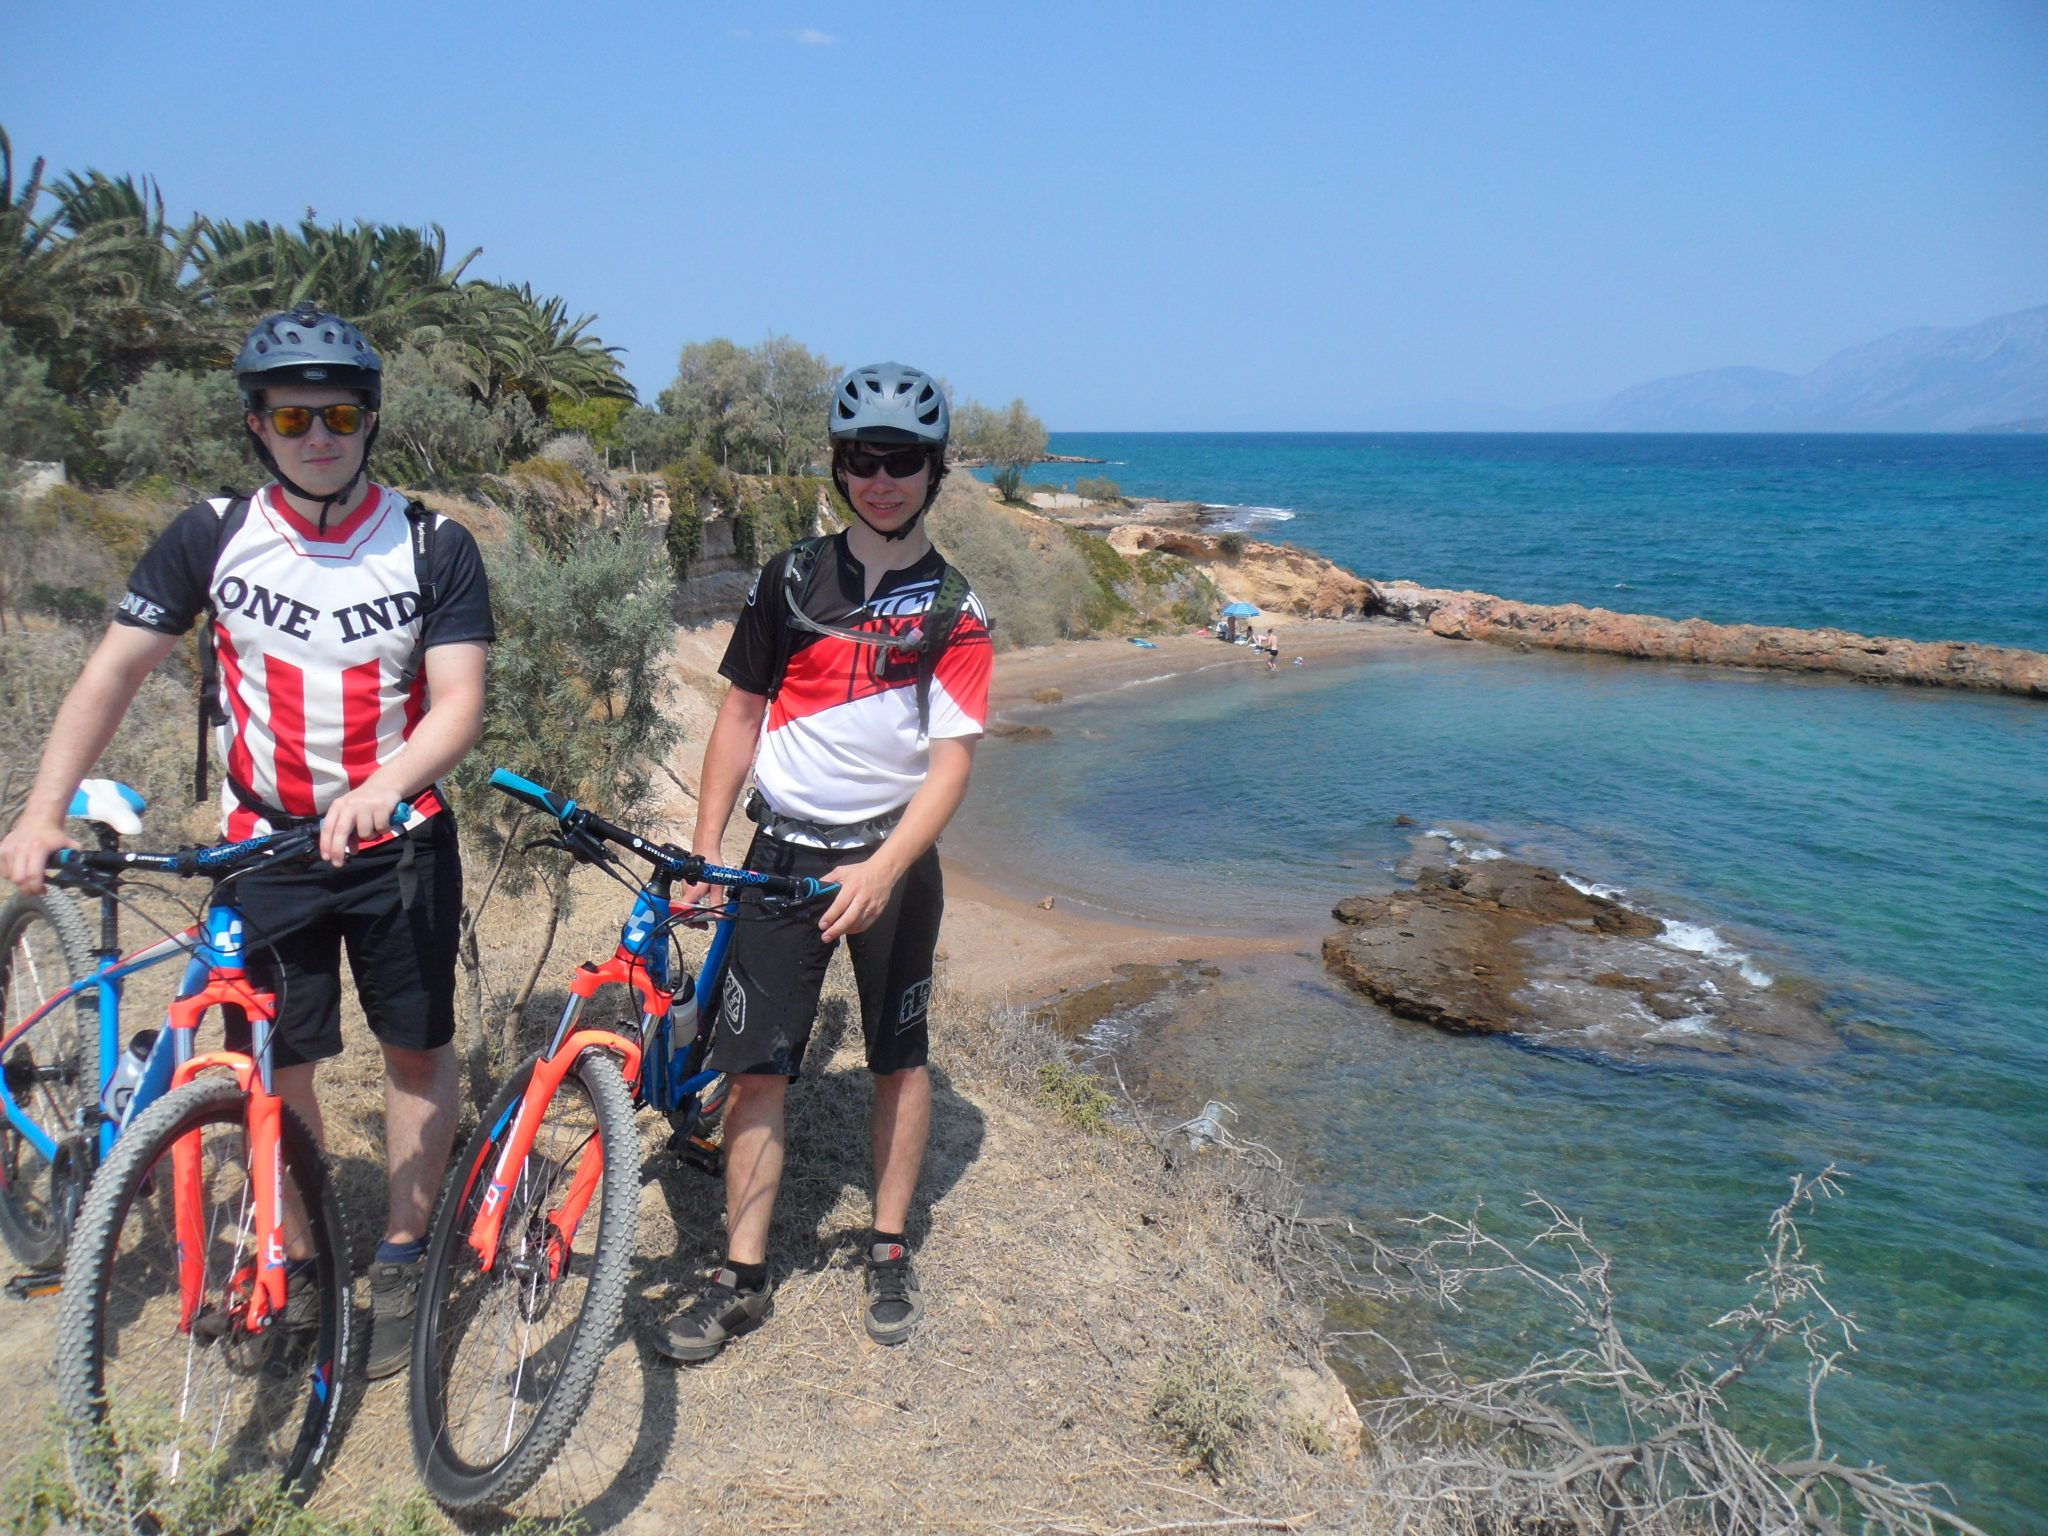 Cycling / Coast to coast sublime beaches of Chalkis